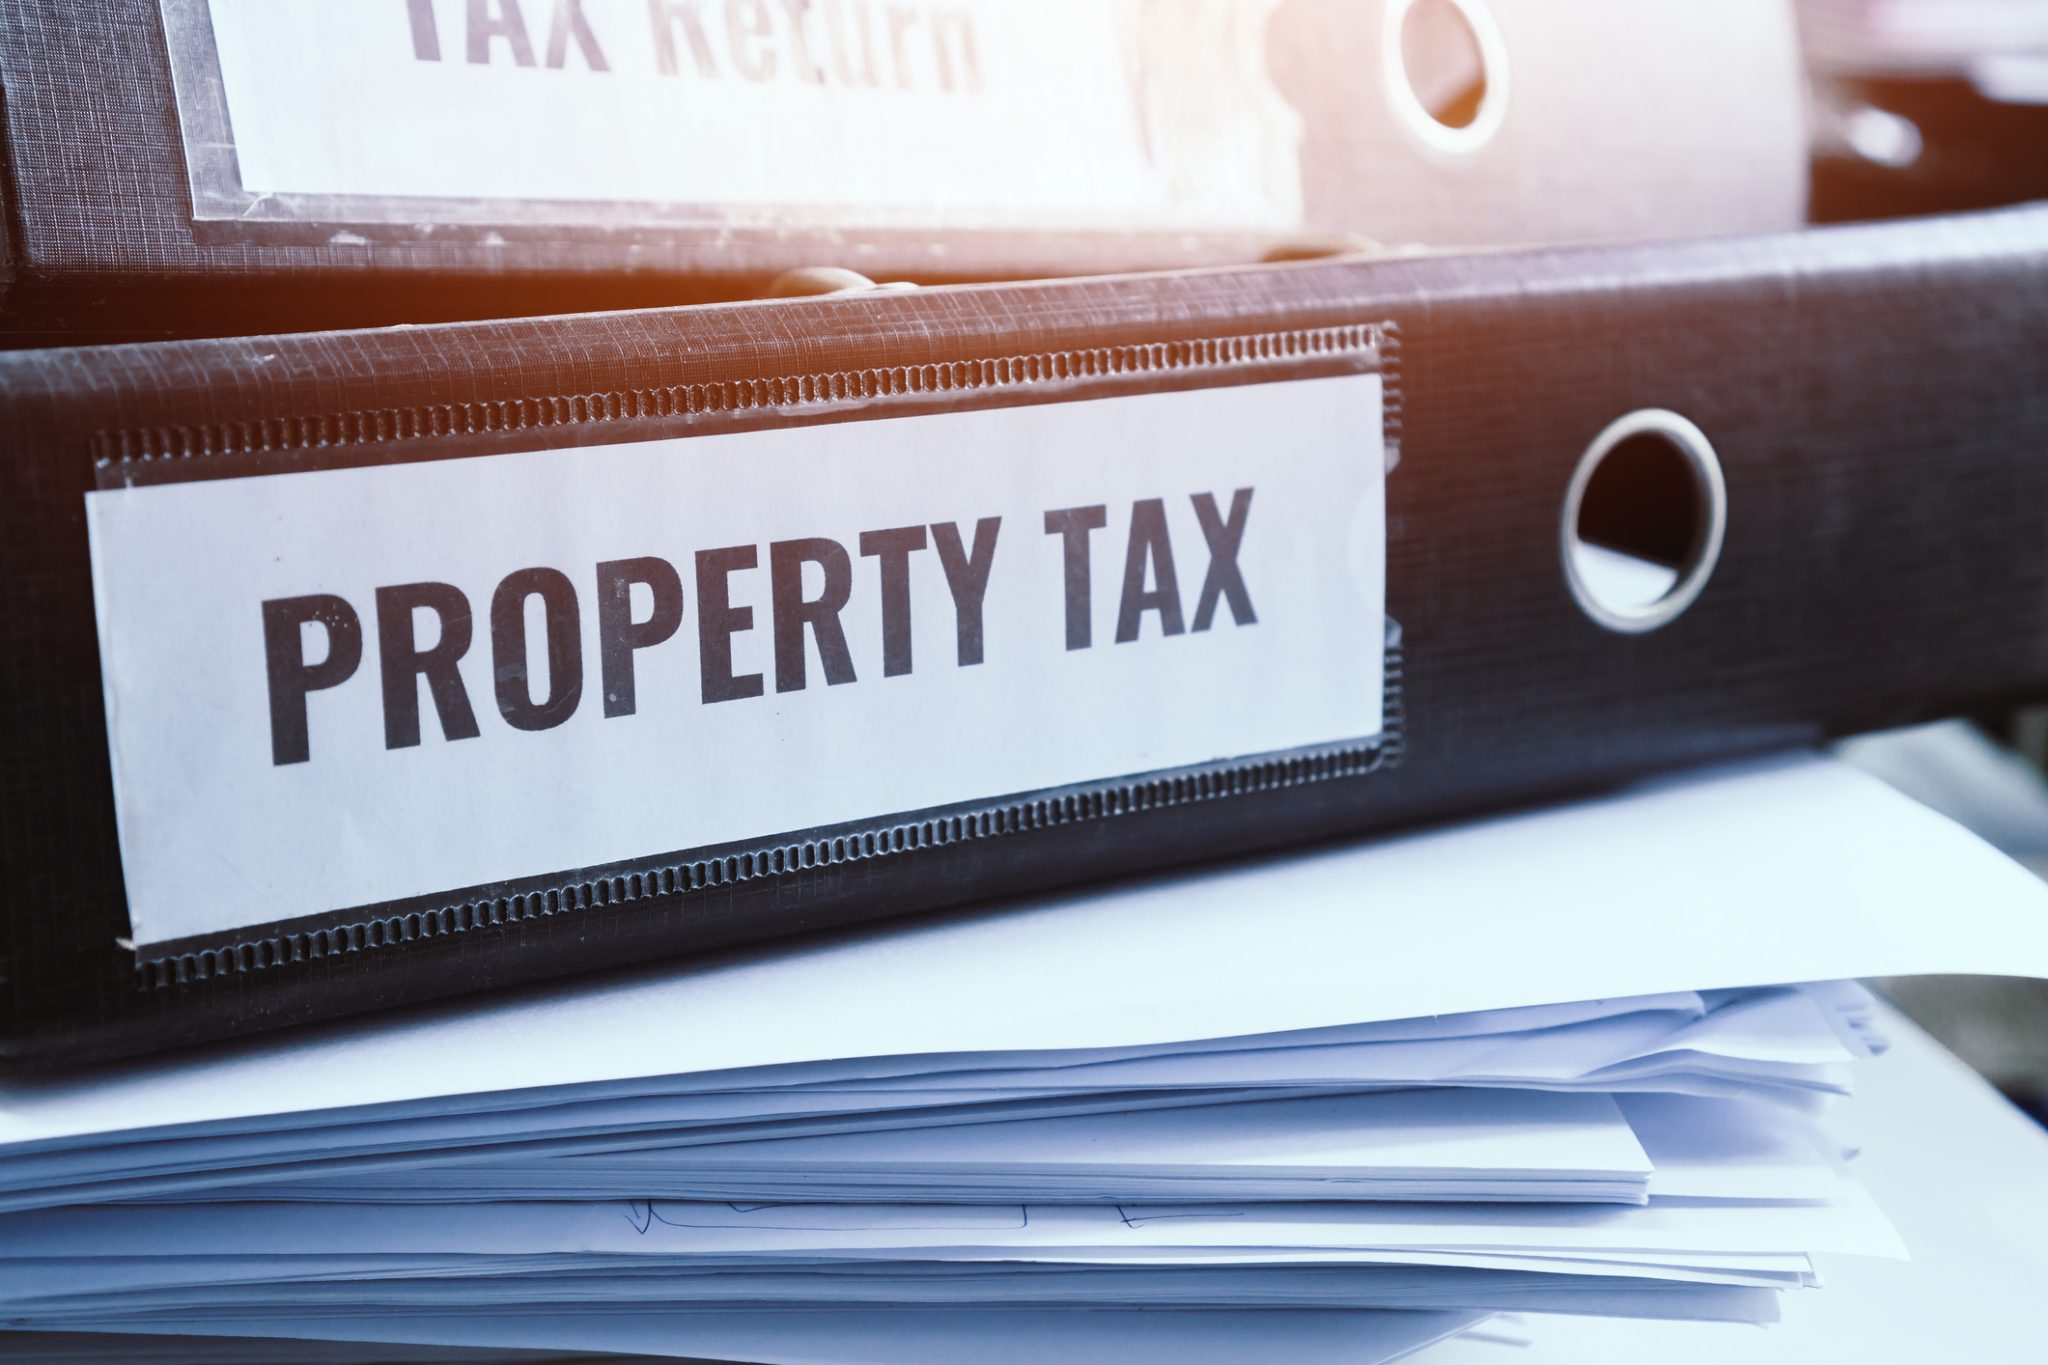 The latest on stamp duty: what lies ahead for the property tax?